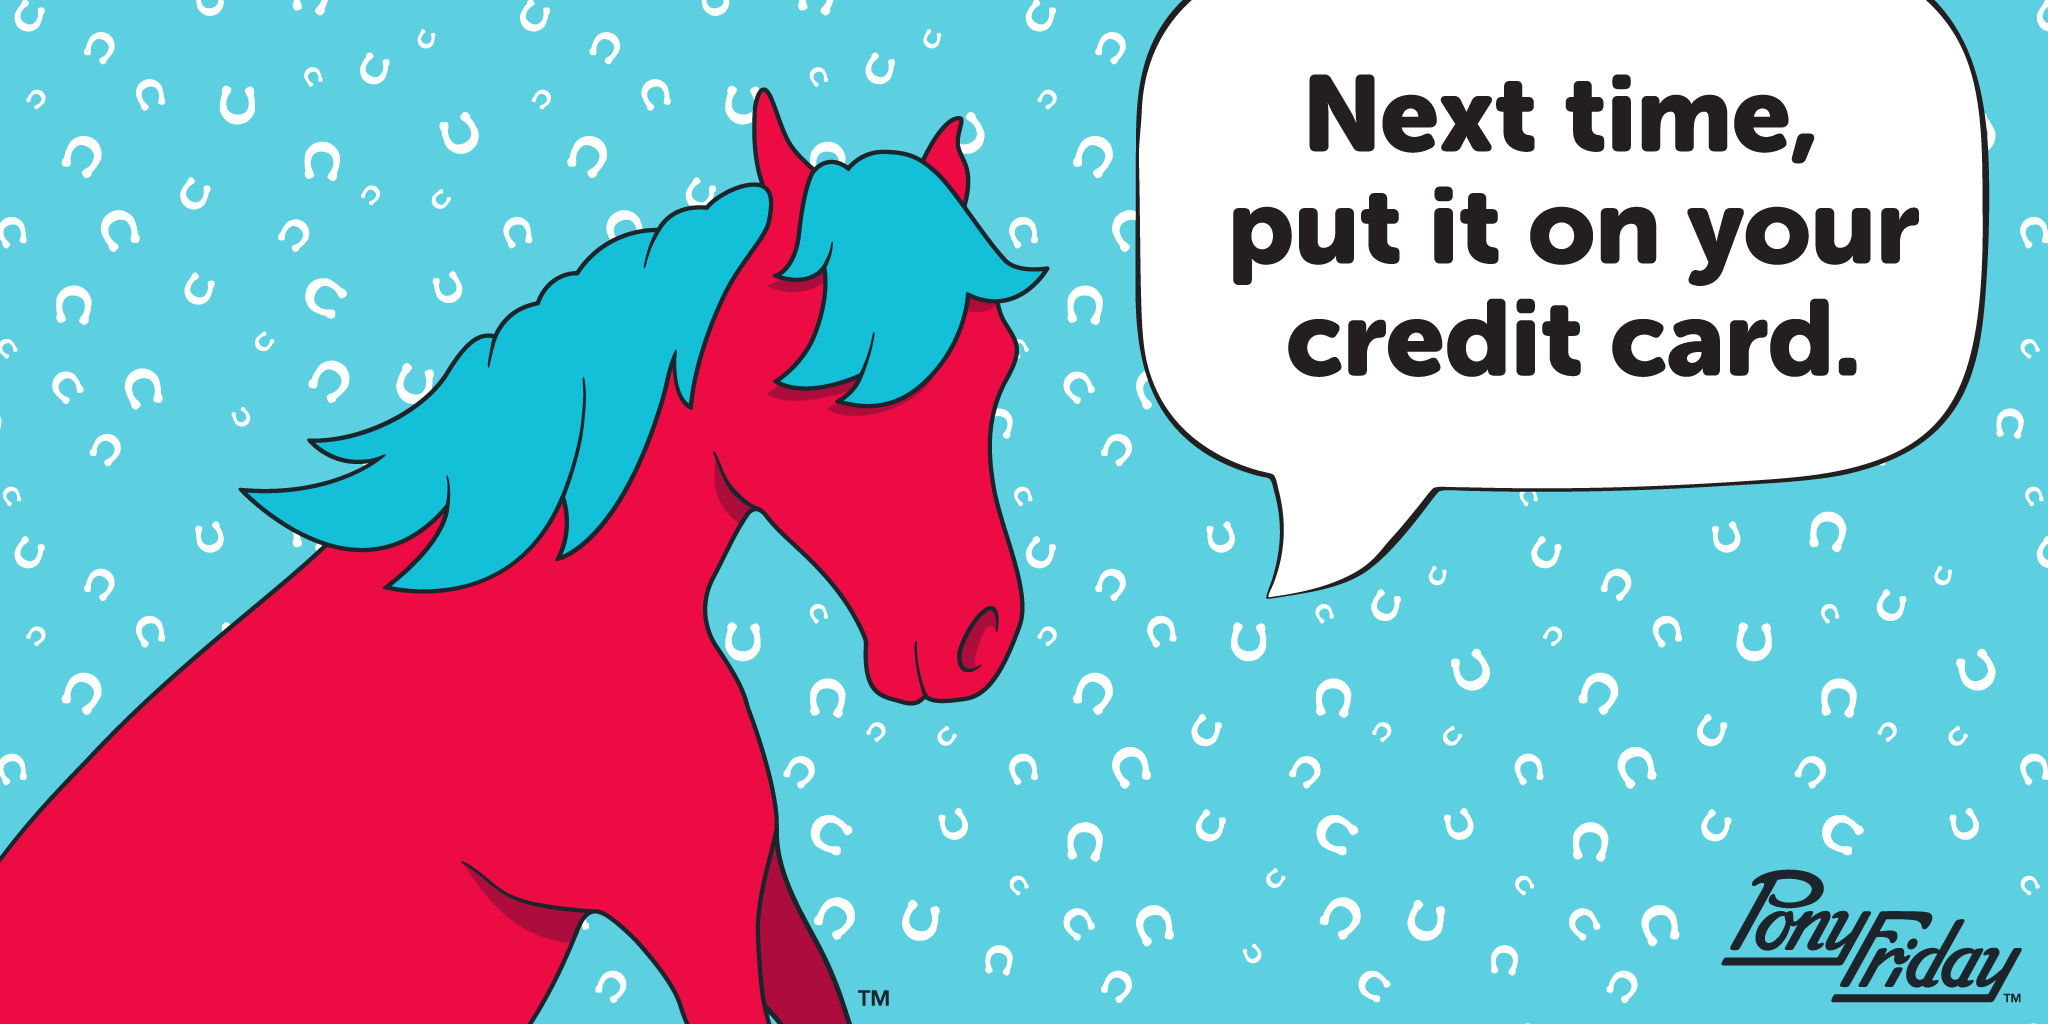 Pony-Friday-Credit-Card-Charge-It-Pony-Horseshoes-Lucky-Easy-Studio-Blog-Header.phg